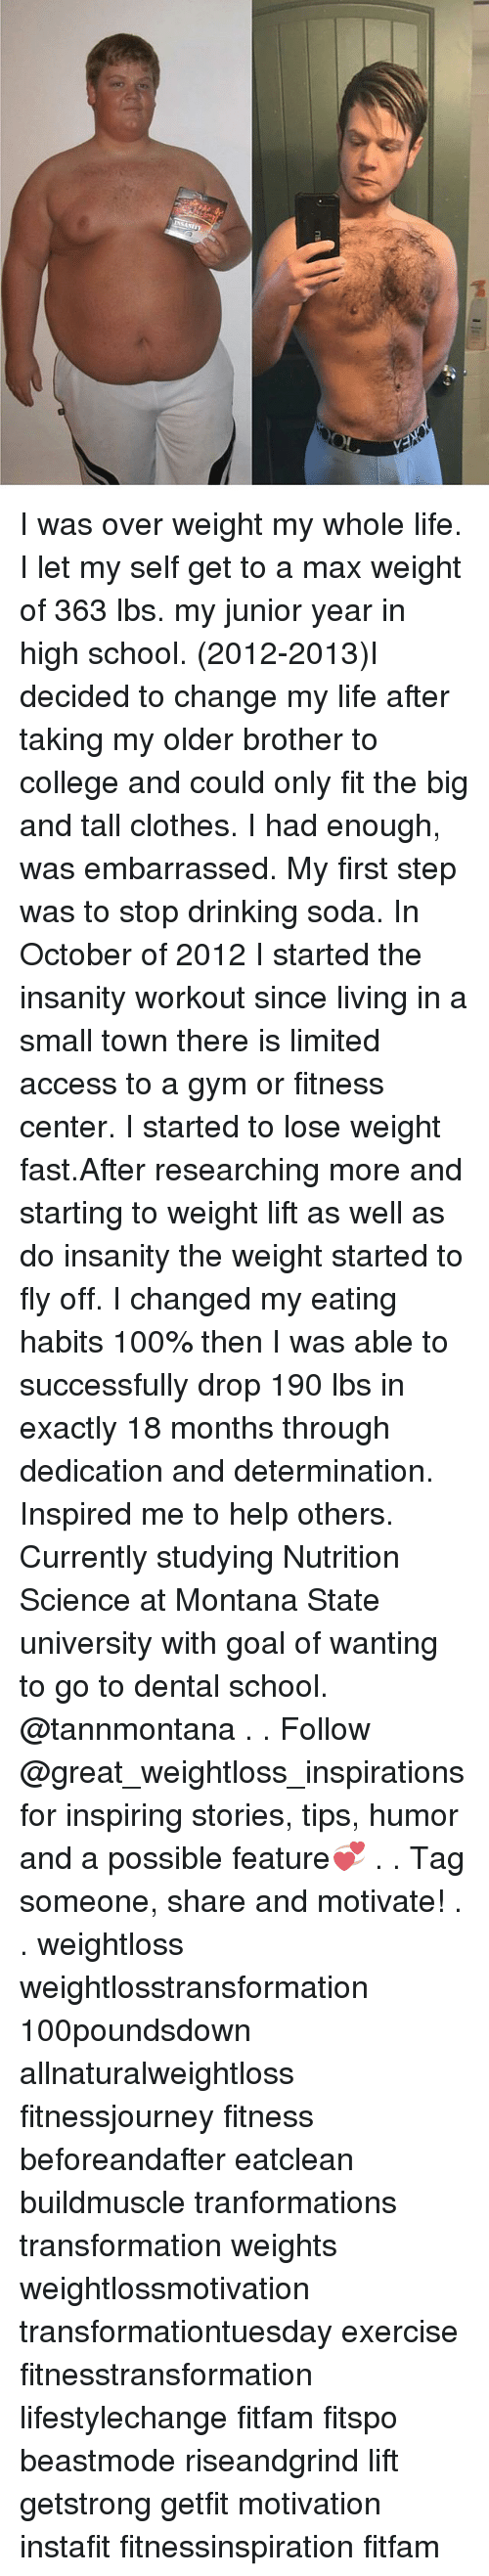 Anaconda, Clothes, and College: I was over weight my whole life. I let my self get to a max weight of 363 lbs. my junior year in high school. (2012-2013)I decided to change my life after taking my older brother to college and could only fit the big and tall clothes. I had enough, was embarrassed. My first step was to stop drinking soda. In October of 2012 I started the insanity workout since living in a small town there is limited access to a gym or fitness center. I started to lose weight fast.After researching more and starting to weight lift as well as do insanity the weight started to fly off. I changed my eating habits 100% then I was able to successfully drop 190 lbs in exactly 18 months through dedication and determination. Inspired me to help others. Currently studying Nutrition Science at Montana State university with goal of wanting to go to dental school. @tannmontana . . Follow @great_weightloss_inspirations for inspiring stories, tips, humor and a possible feature💞 . . Tag someone, share and motivate! . . weightloss weightlosstransformation 100poundsdown allnaturalweightloss fitnessjourney fitness beforeandafter eatclean buildmuscle tranformations transformation weights weightlossmotivation transformationtuesday exercise fitnesstransformation lifestylechange fitfam fitspo beastmode riseandgrind lift getstrong getfit motivation instafit fitnessinspiration fitfam